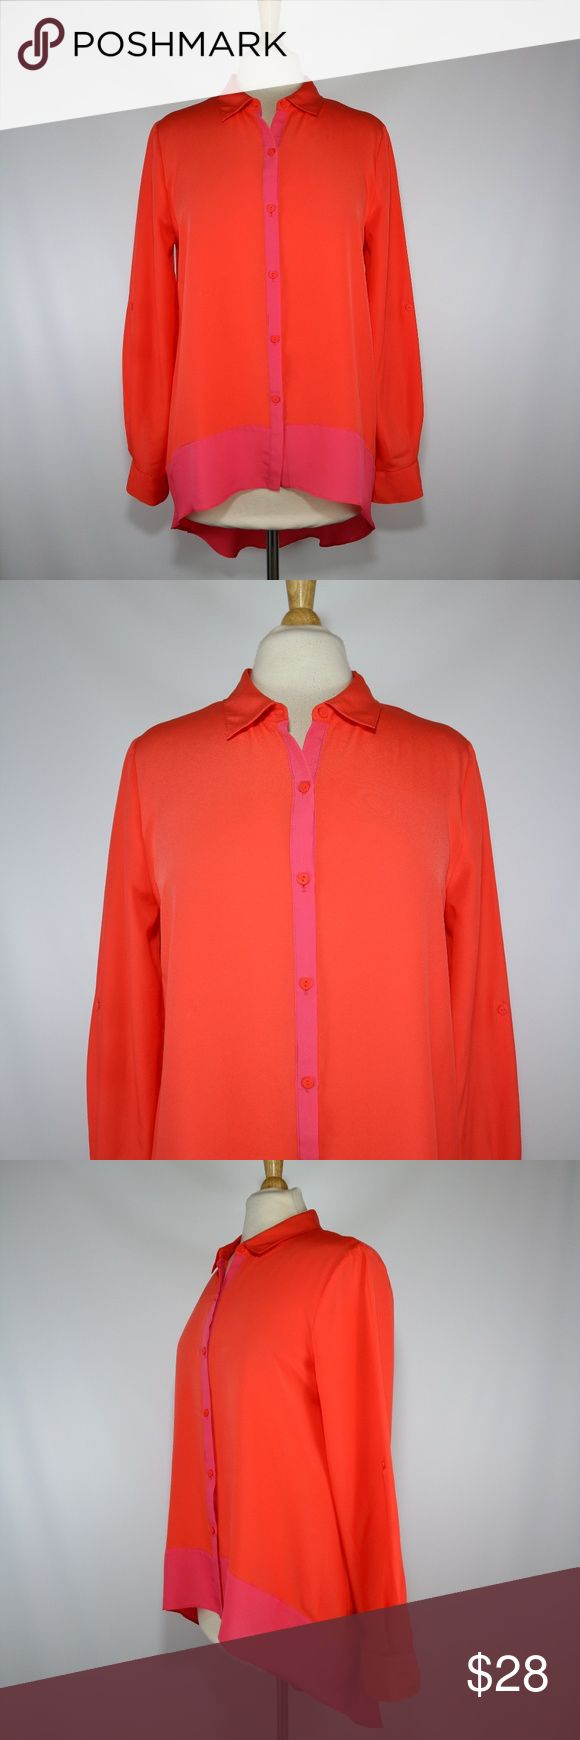 """Nicole Miller Hi Lo Button Up Blouse Nicole Miller women's long sleeve blouse with a hi lo hem. Overall it is orange with pink trim. The sleeves can roll to 3/4. Size M. Gently used and clean condition.  20"""" armpit to armpit  25"""" sleeves (shoulder seam to cuff) 25"""" long in front; 38"""" long in back Nicole by Nicole Miller Tops Blouses"""